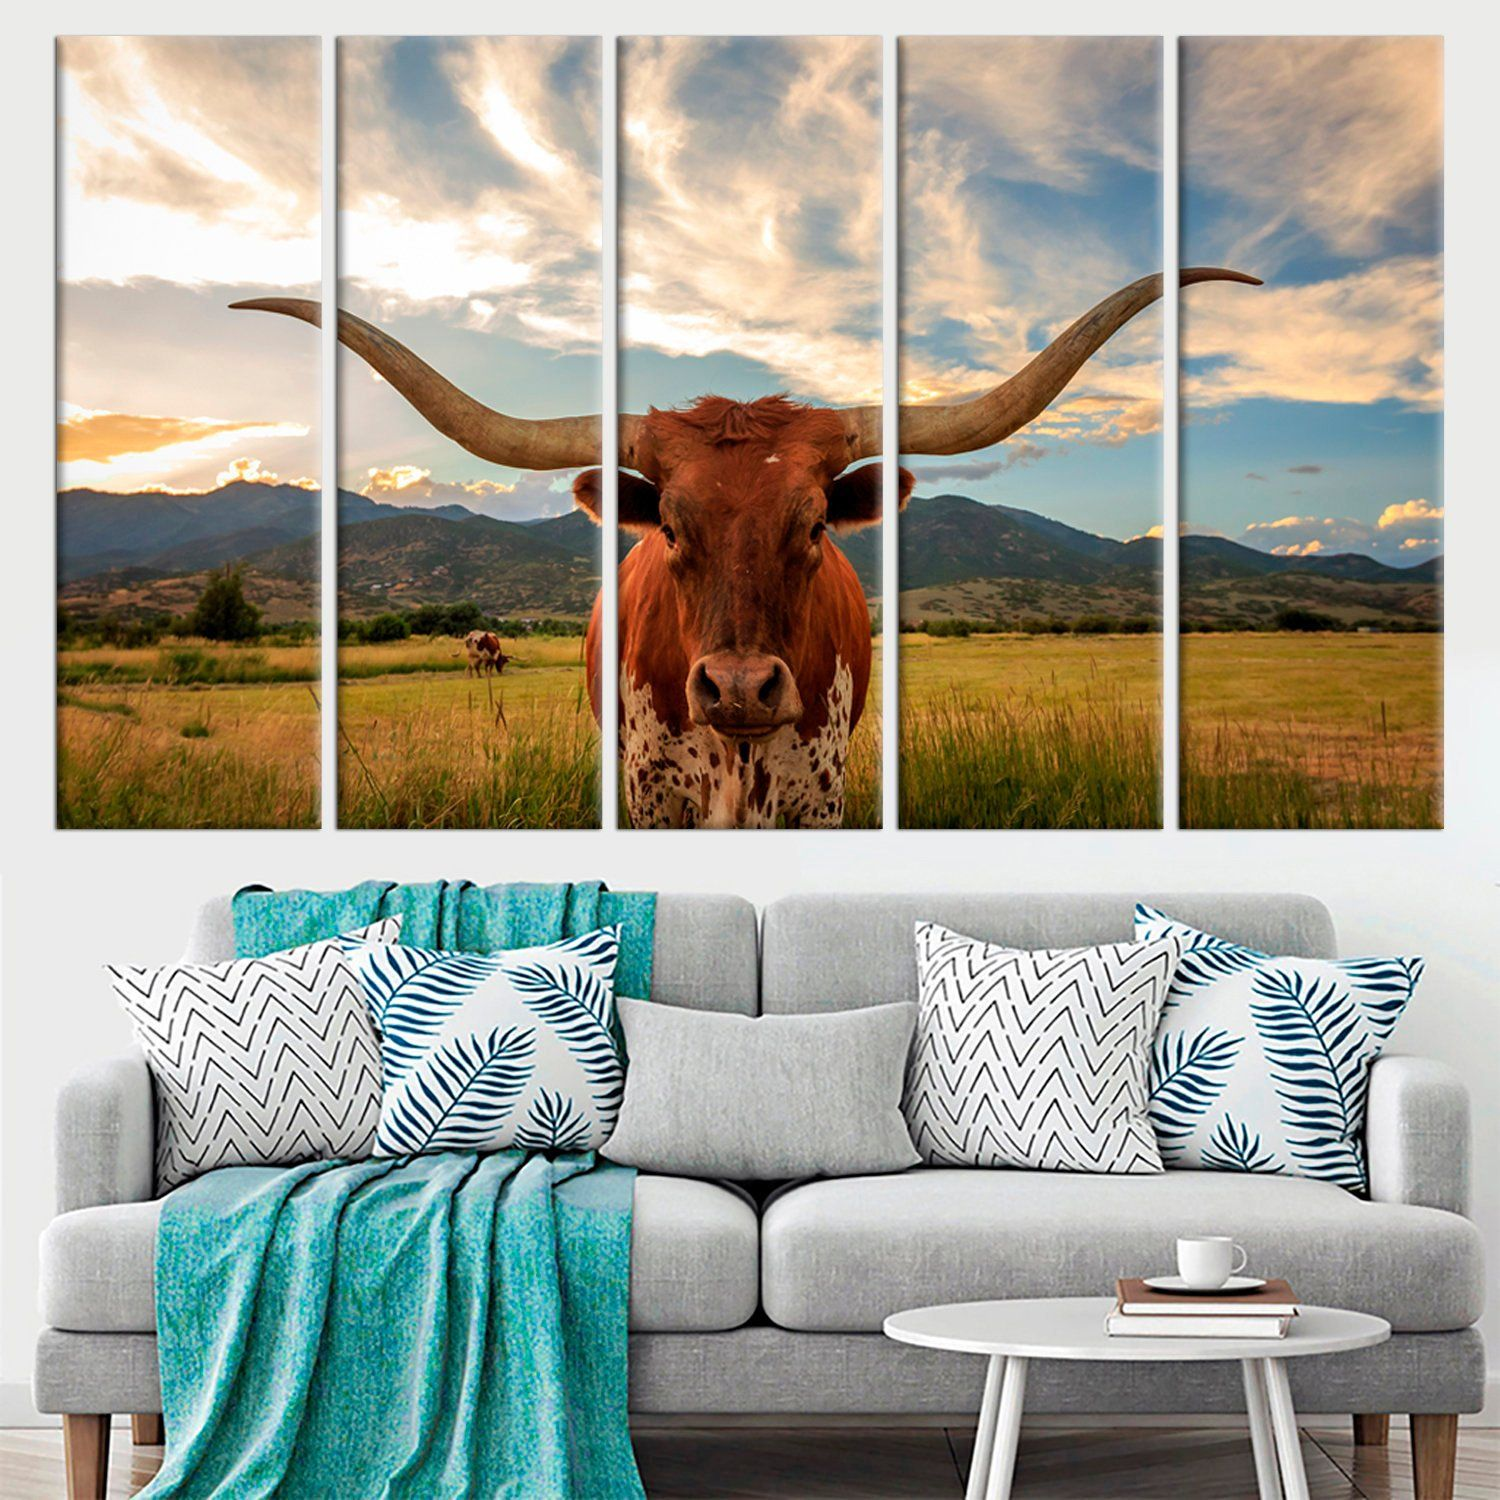 Texas Longhorn steer large canvas print Utah USA Large modern canvas wall art Animal Wildlife print set wall art poster framed wall decor #utahusa